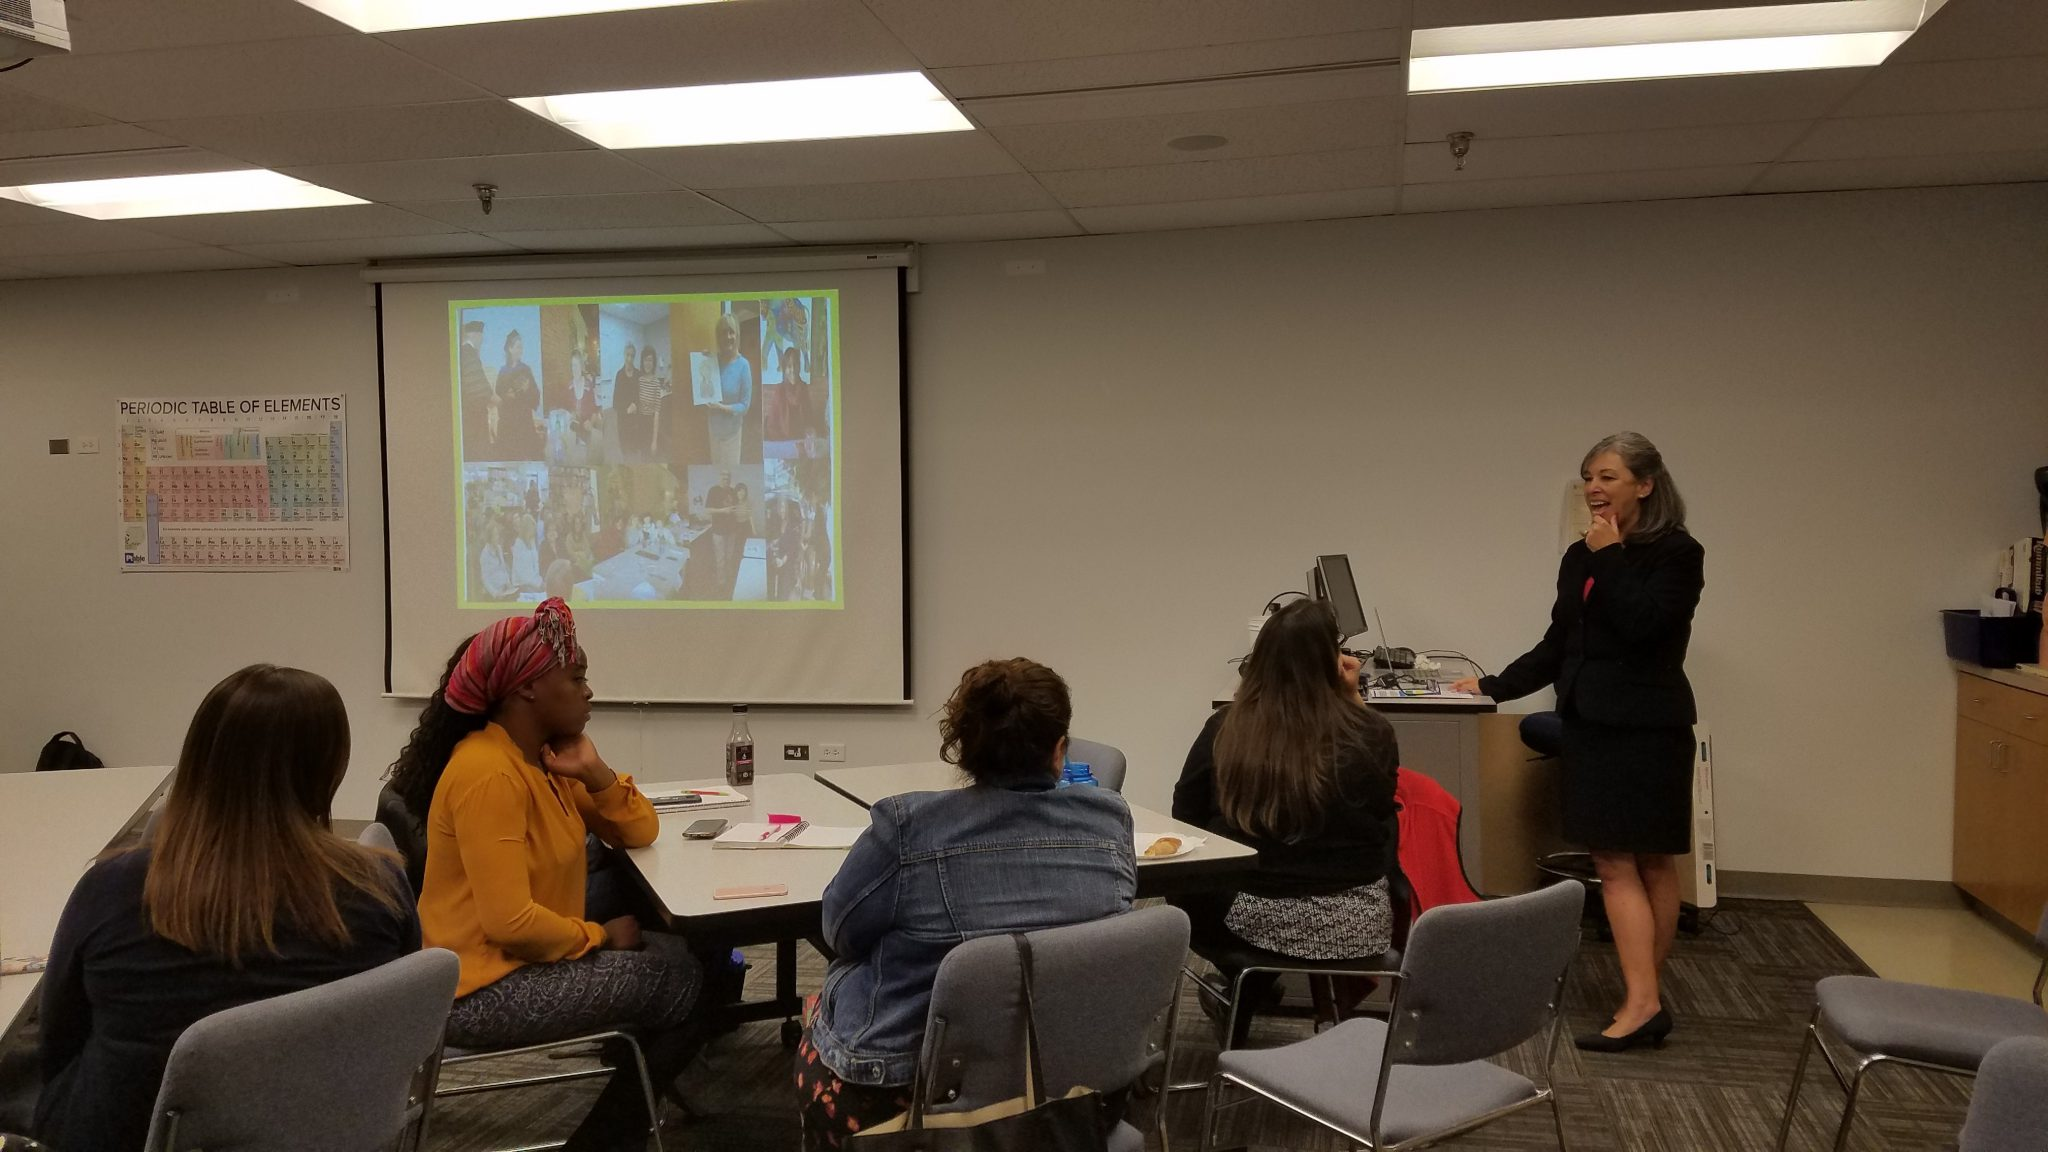 Image of Maria Uribe lecturing at Faculty Symposium